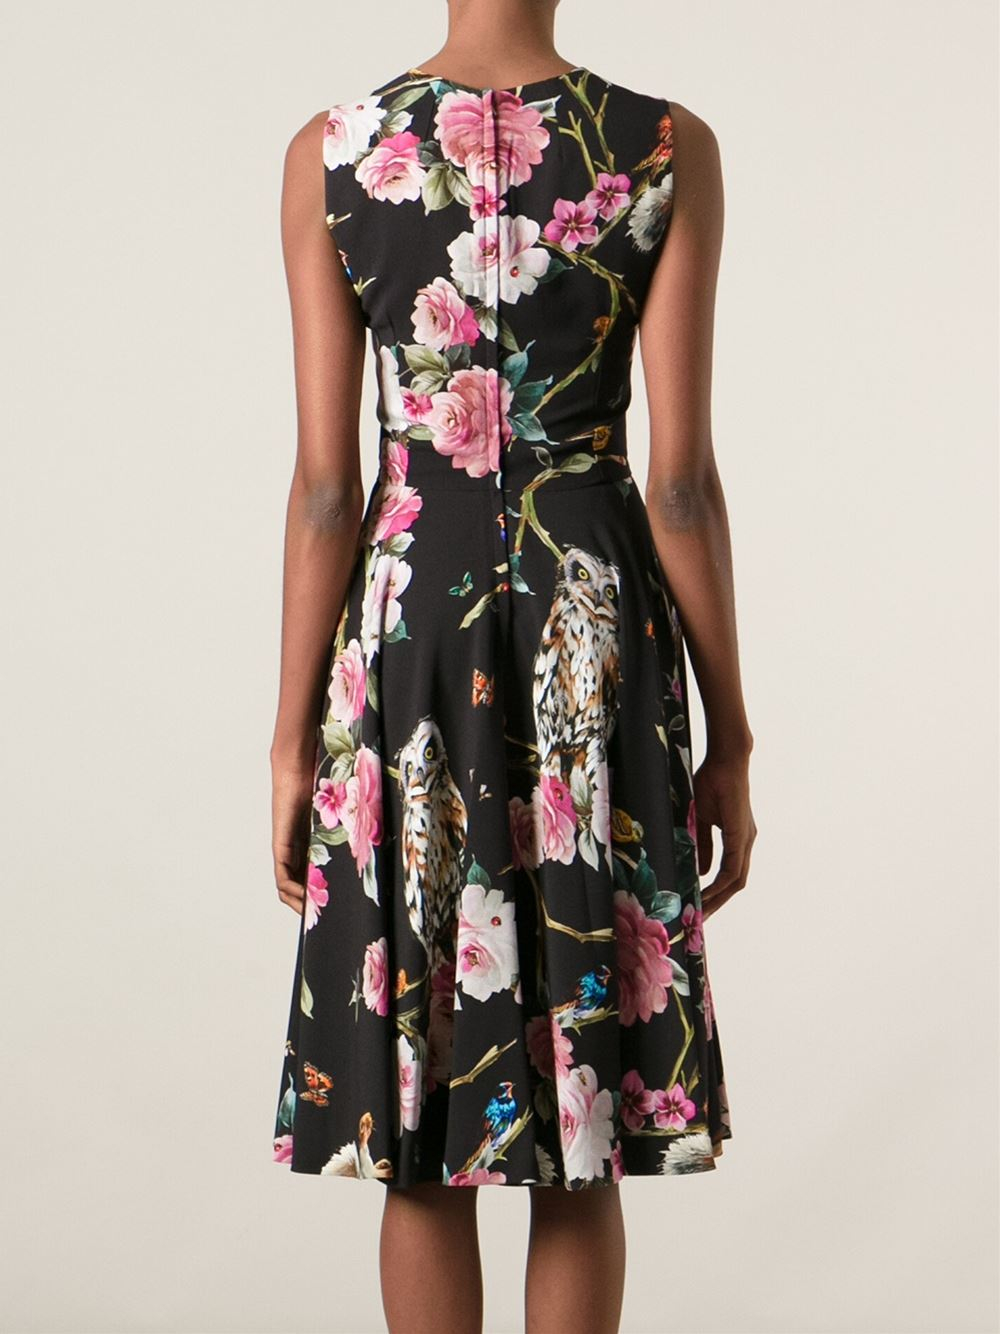 ae1aa5c8bd Lyst - Dolce   Gabbana Floral Animal Print Dress in Black